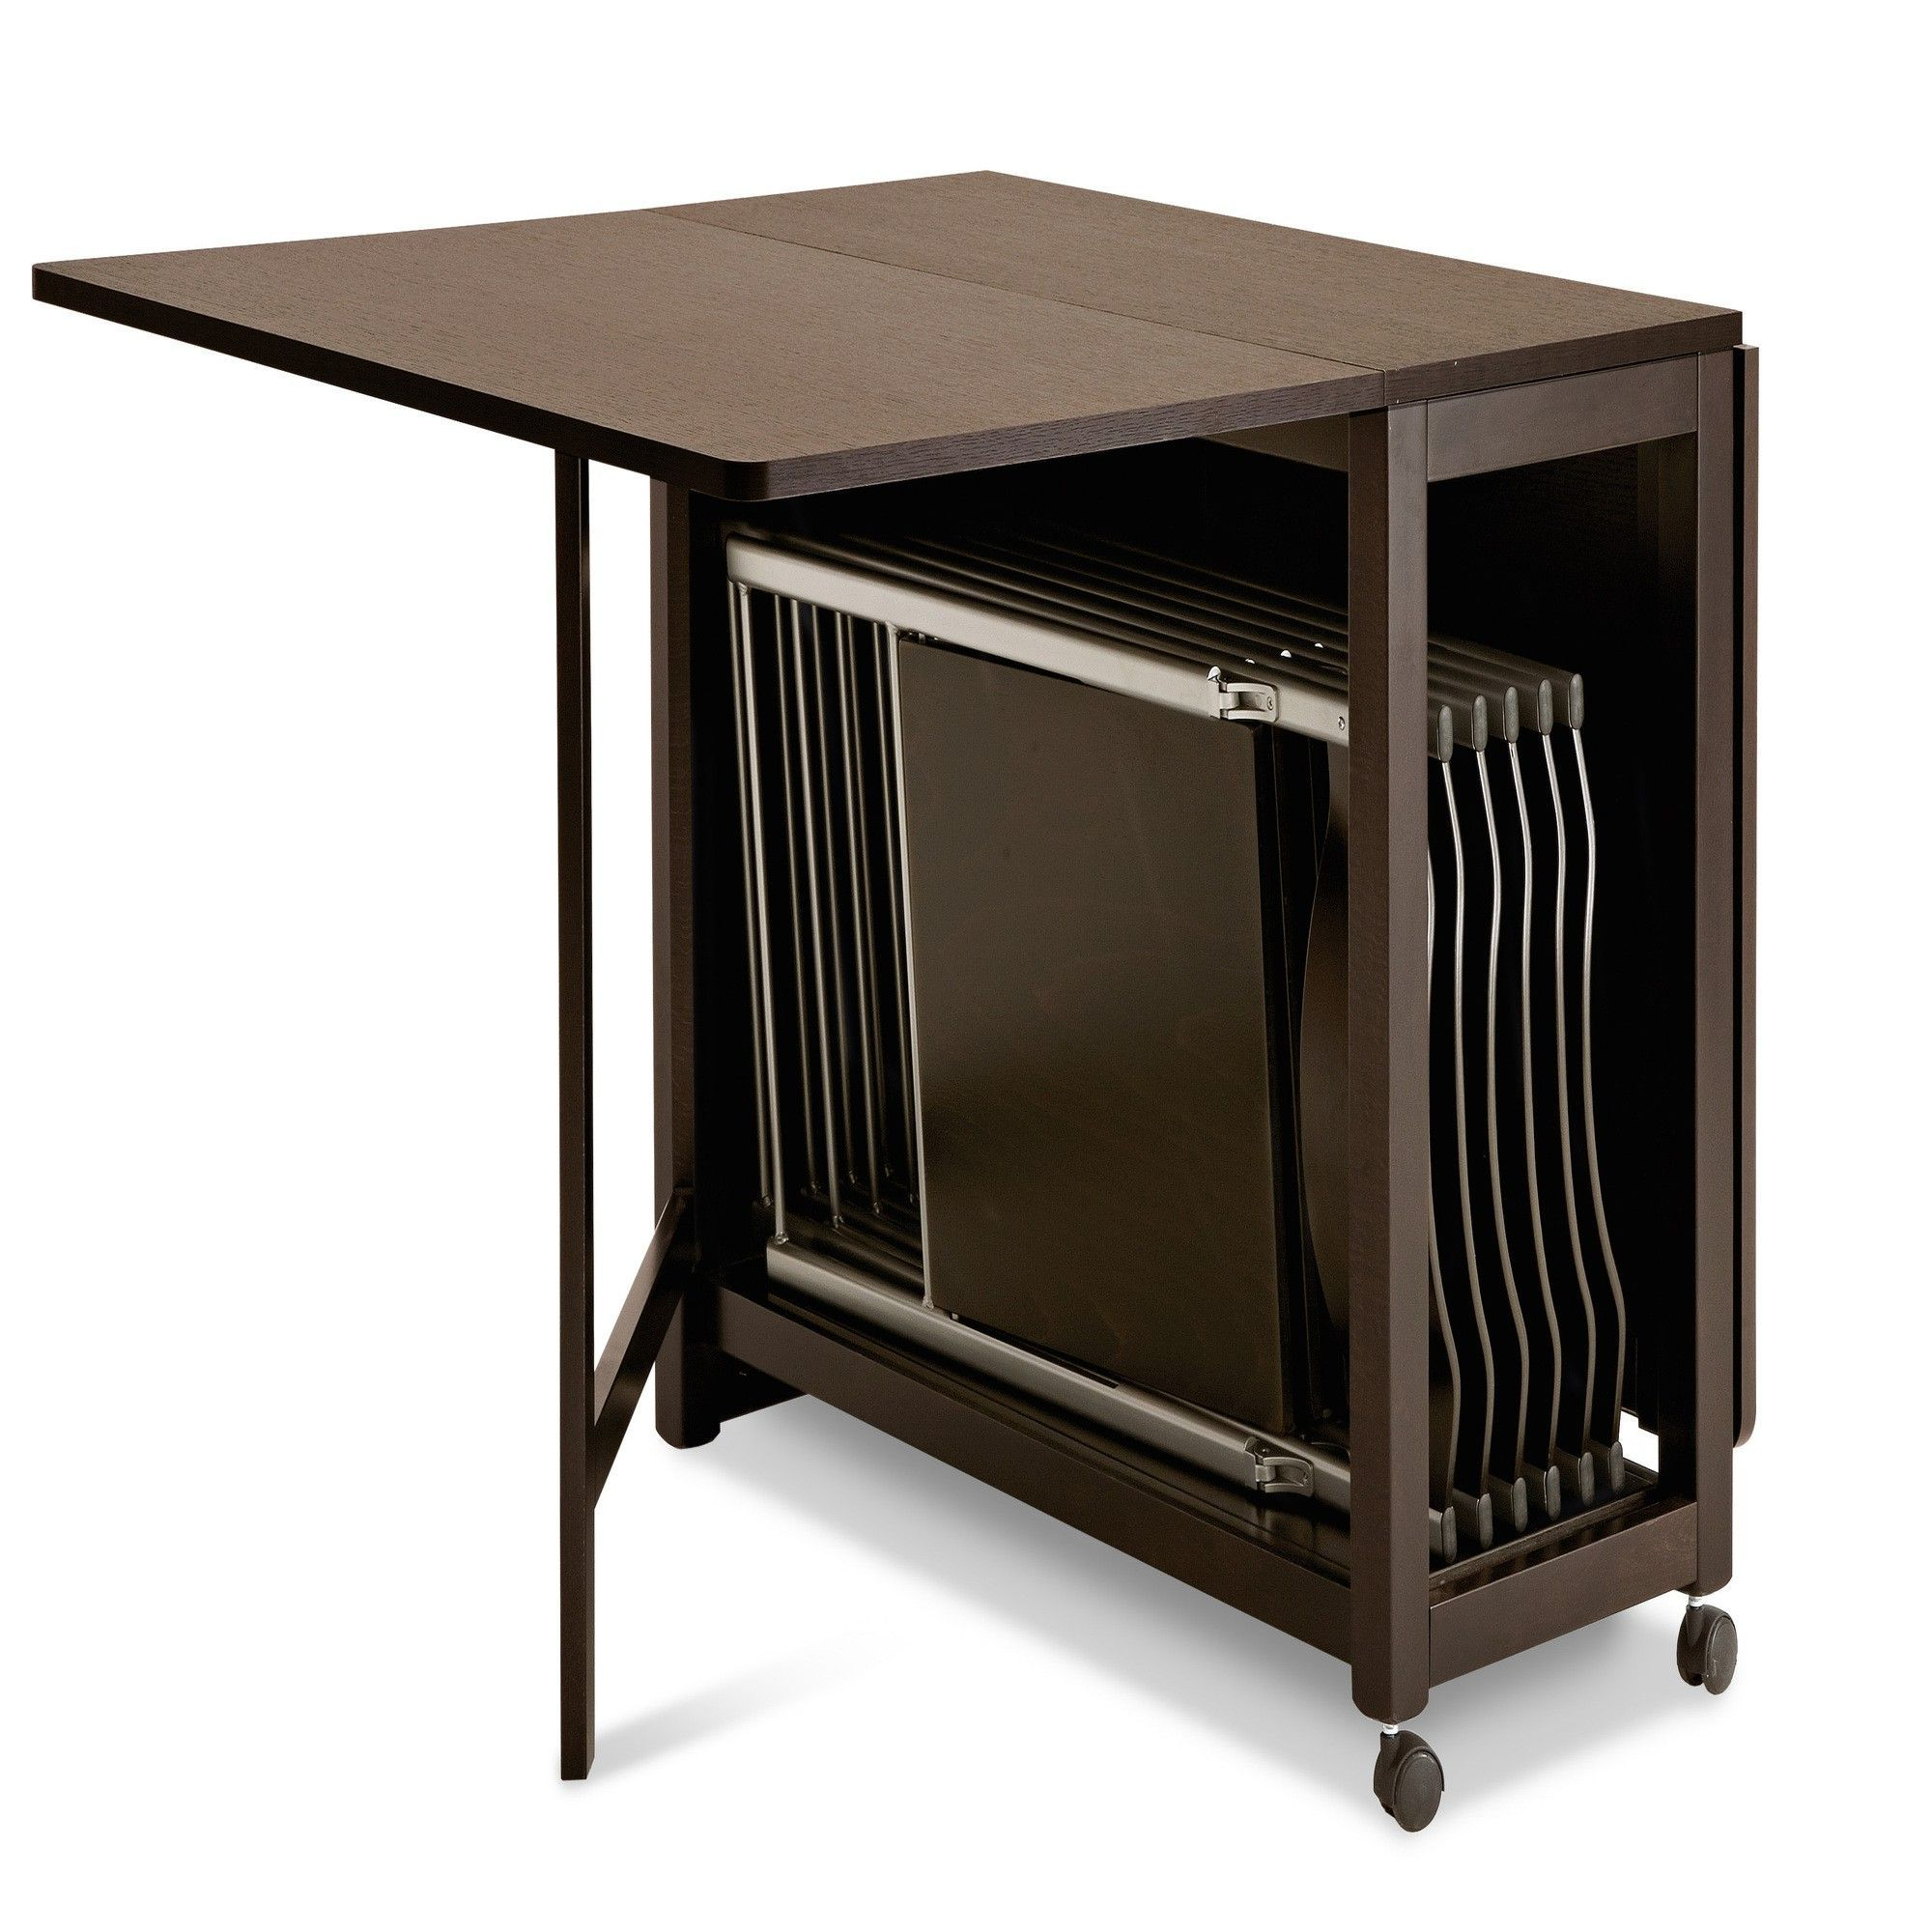 Folding Chair Storage Unique Fold Away Dining Table Inspirational Fold Away